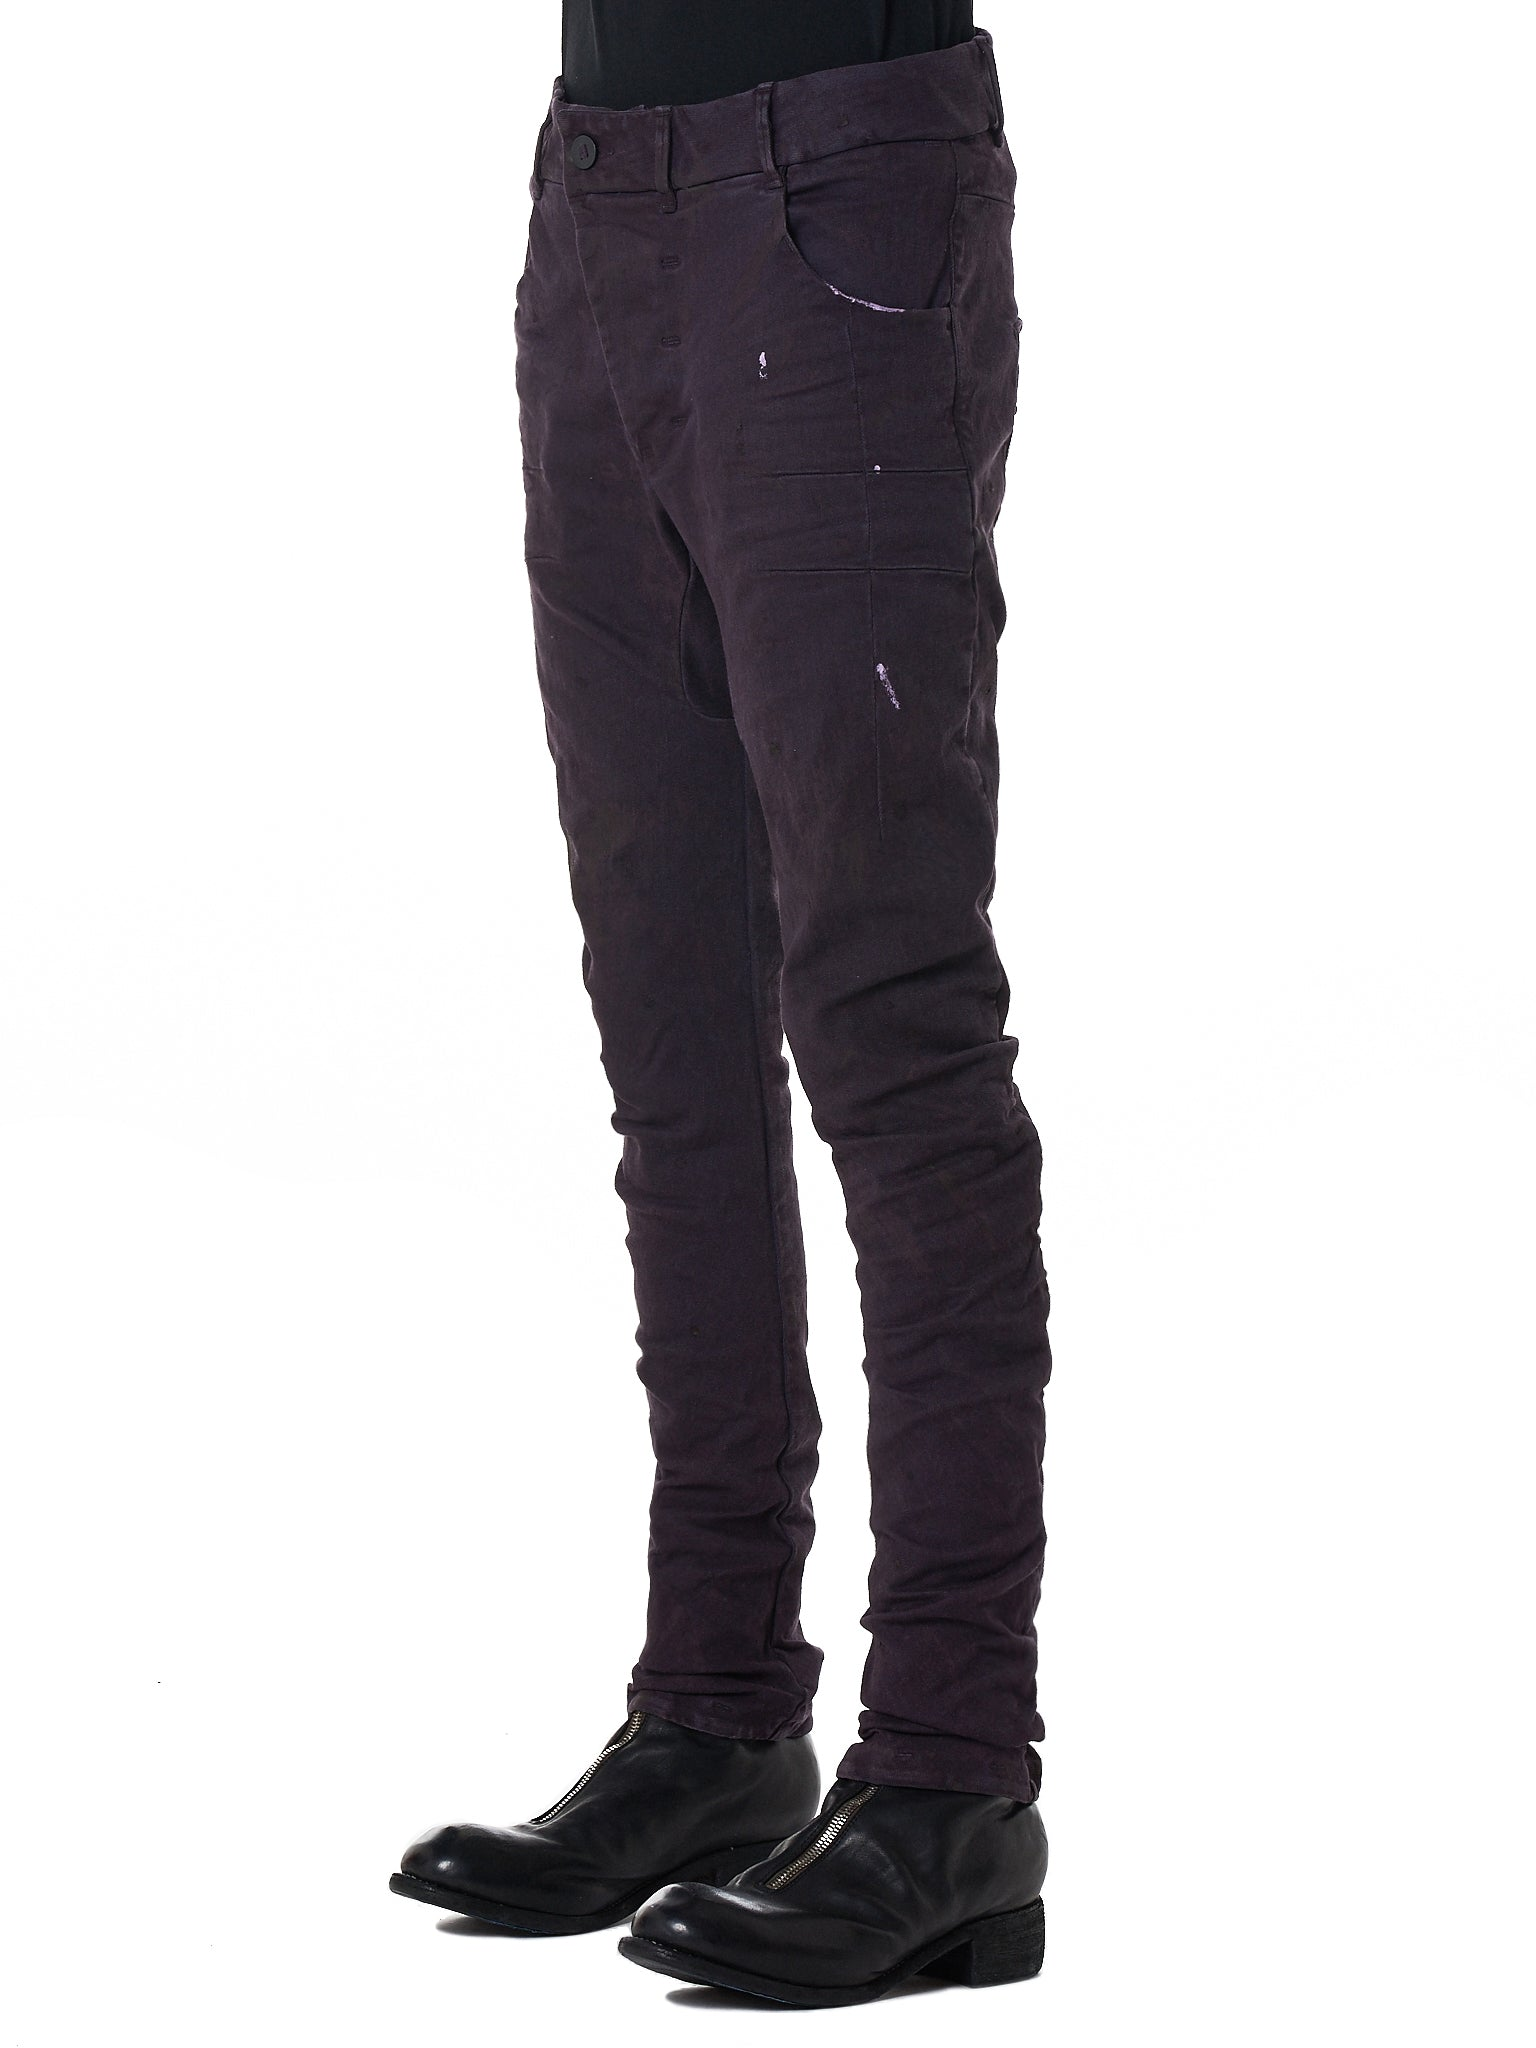 Boris Bidjan Saberi 'P13' Purple Denim - Hlorenzo Side